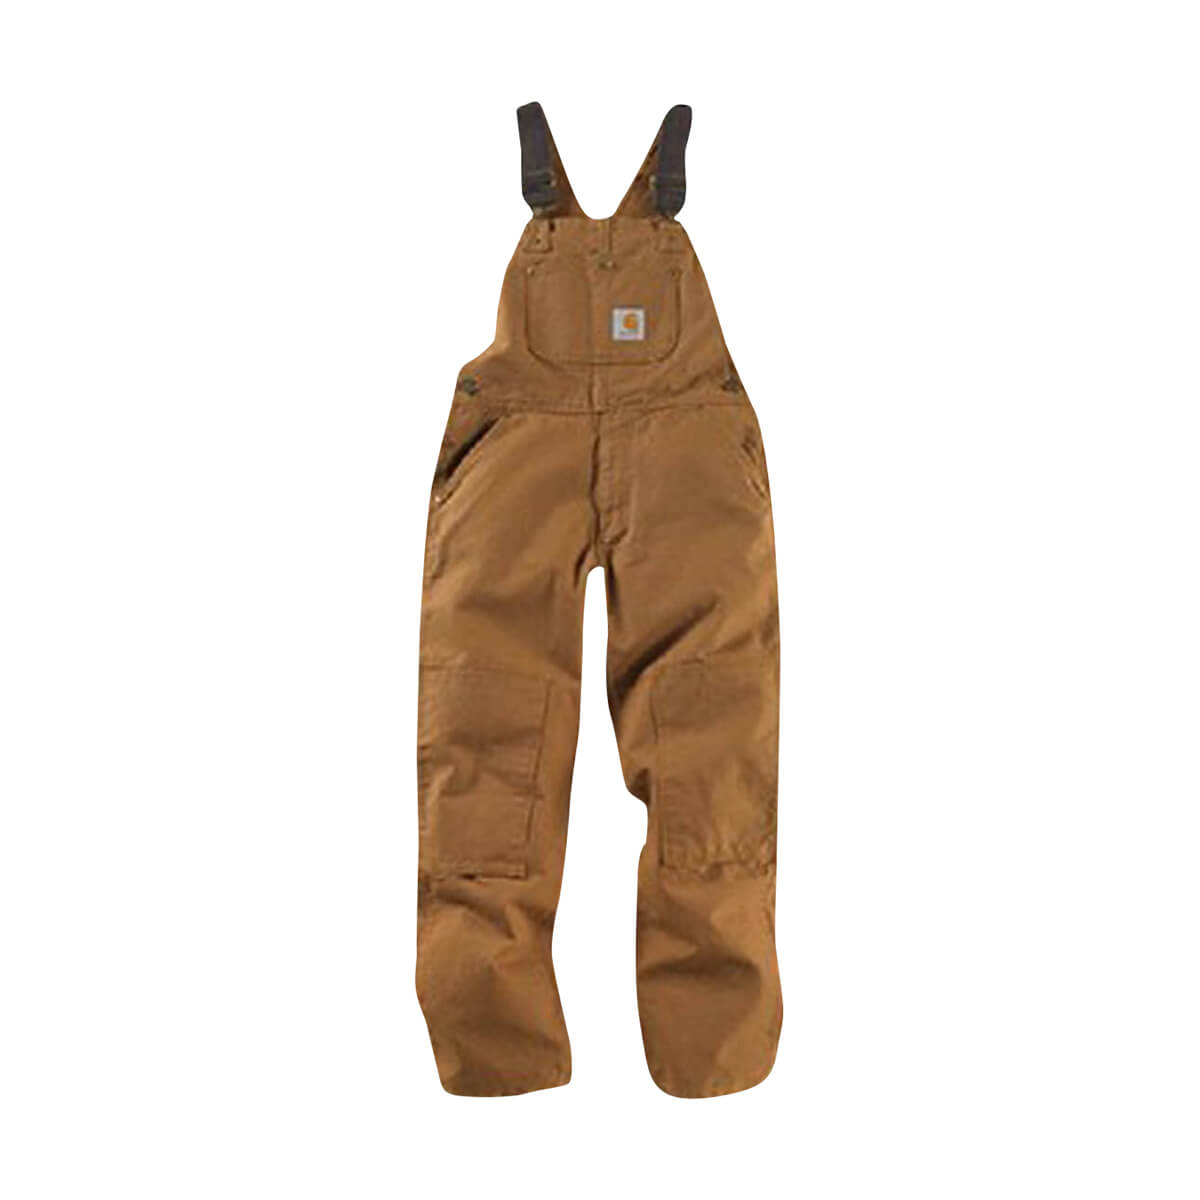 Carhartt Kid's Washed Duck Overalls - Brown